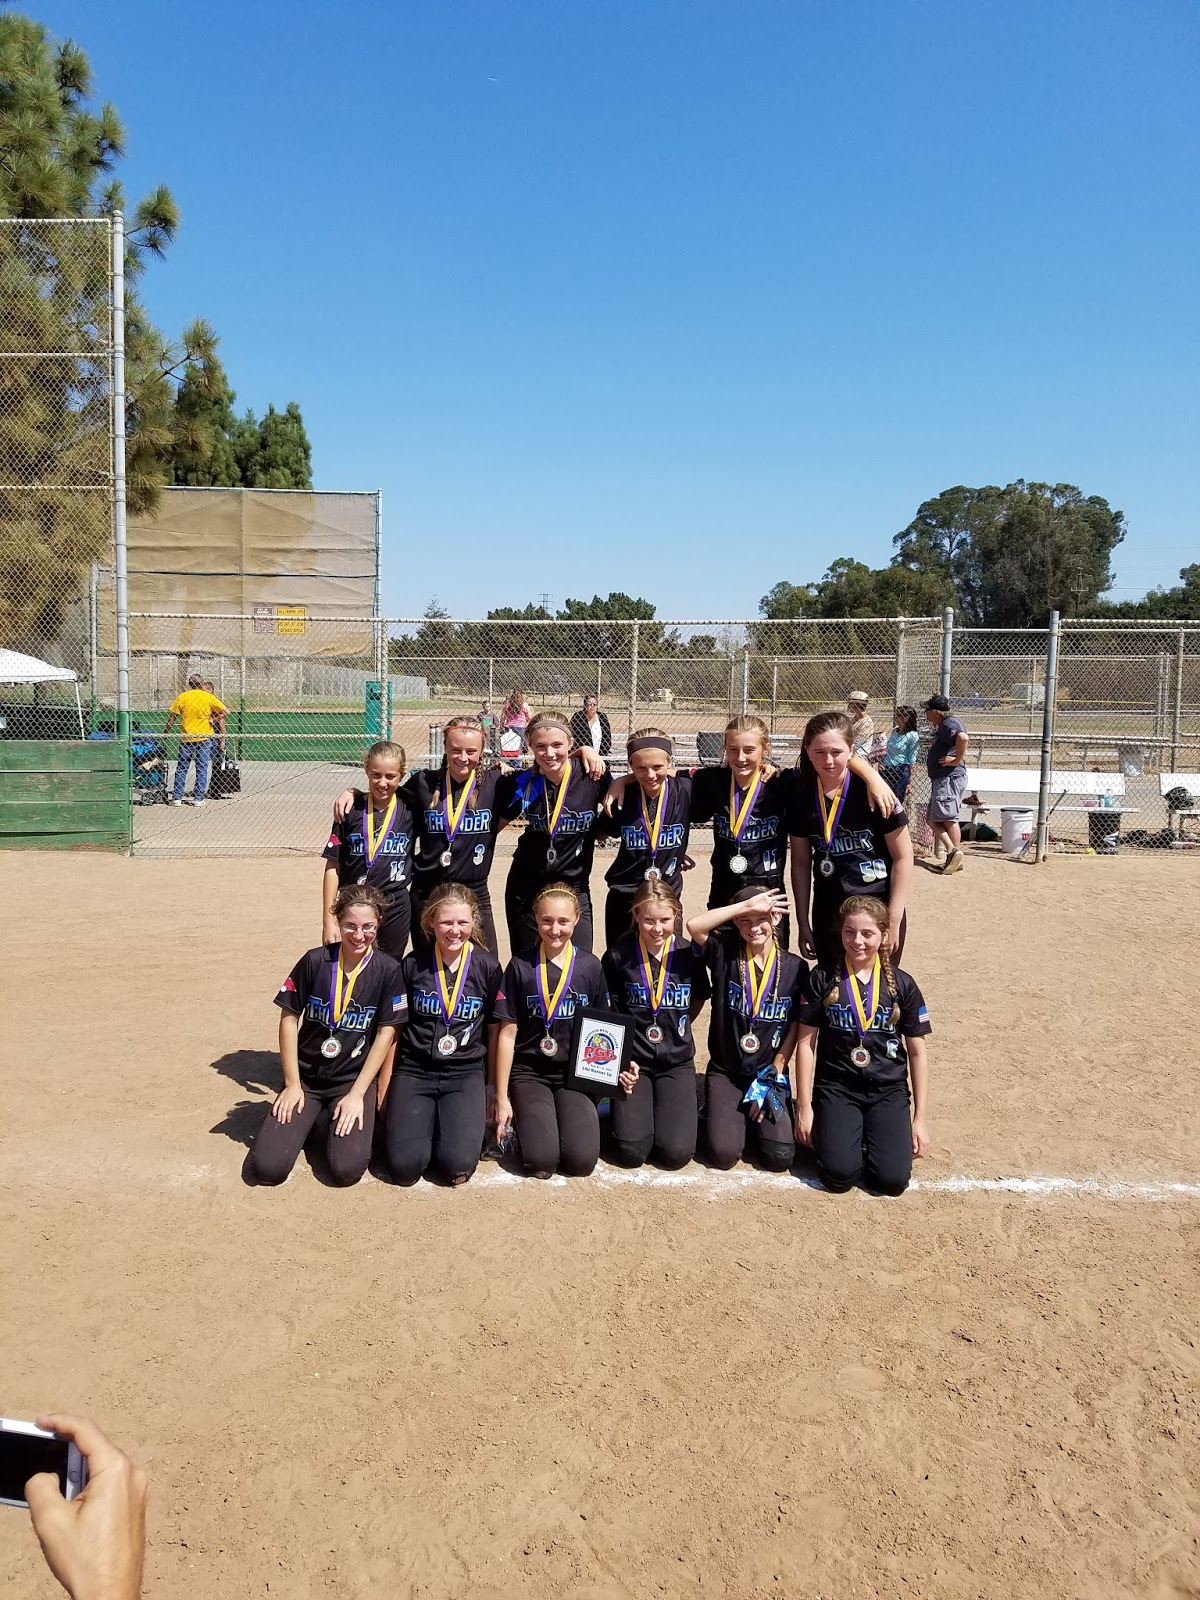 NorCal Thunder Fastpitch Softball: Second Place PGF